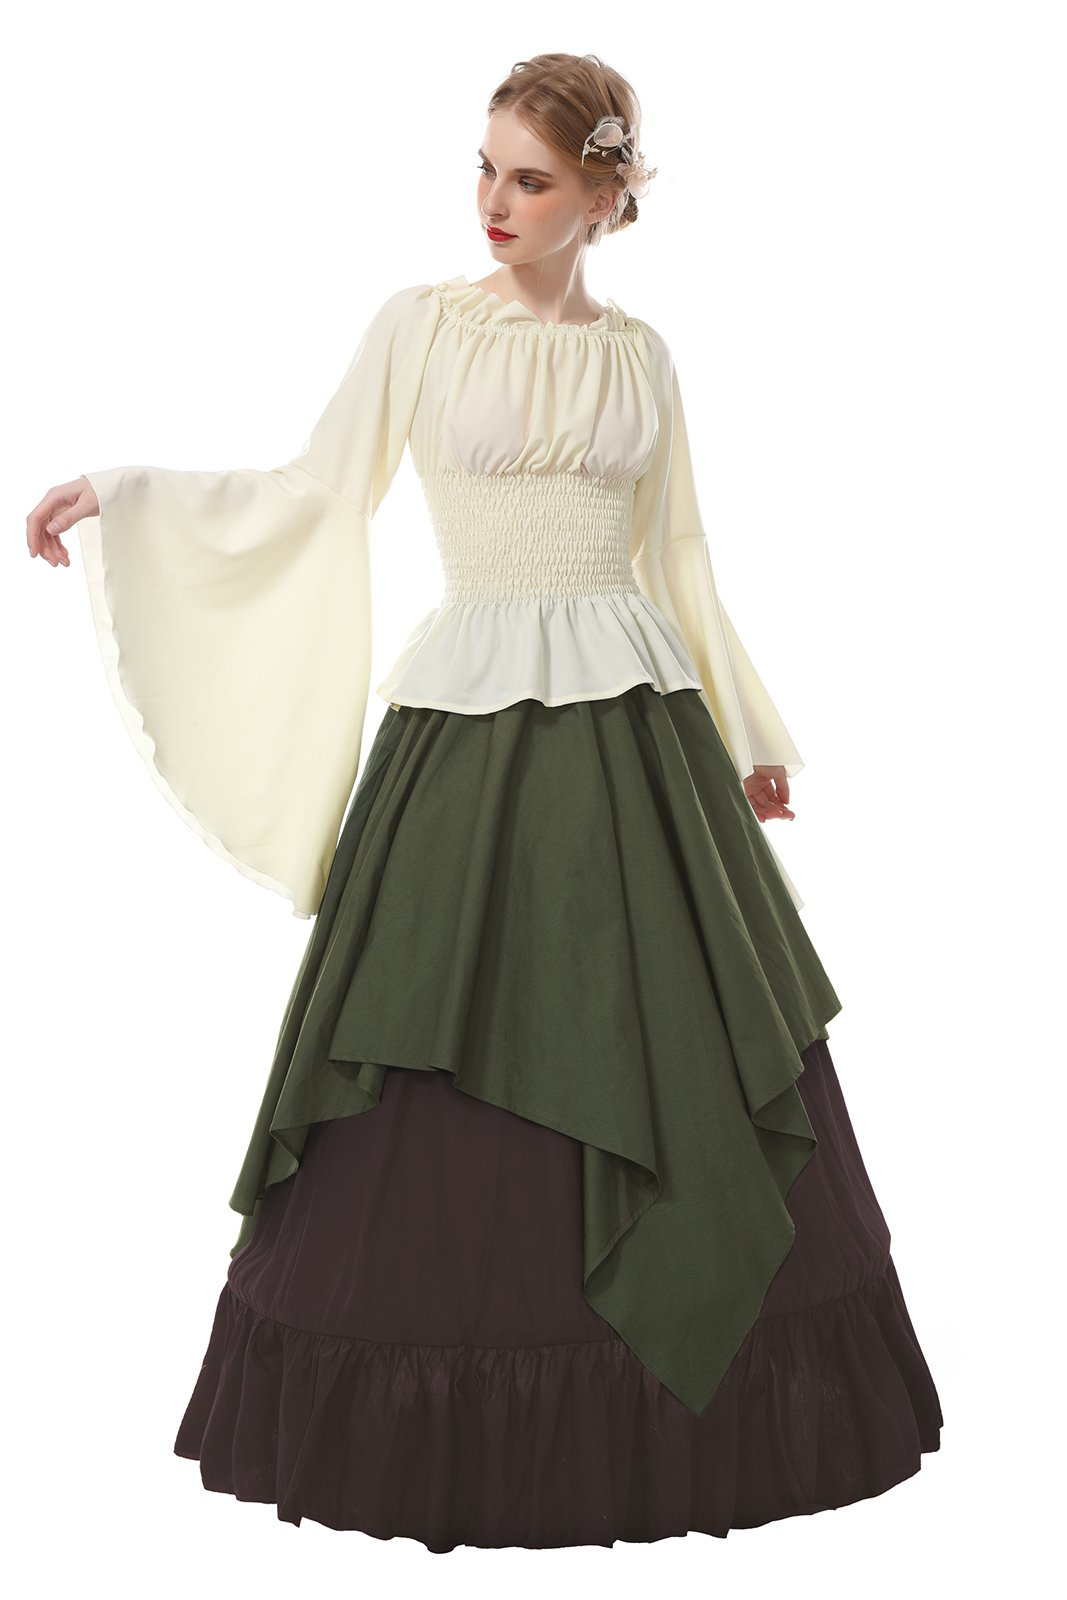 ROLECOS Womens Renaissance Medieval Costume Trumpet Sleeve Peasant Shirt and Skirt Army Green XXL